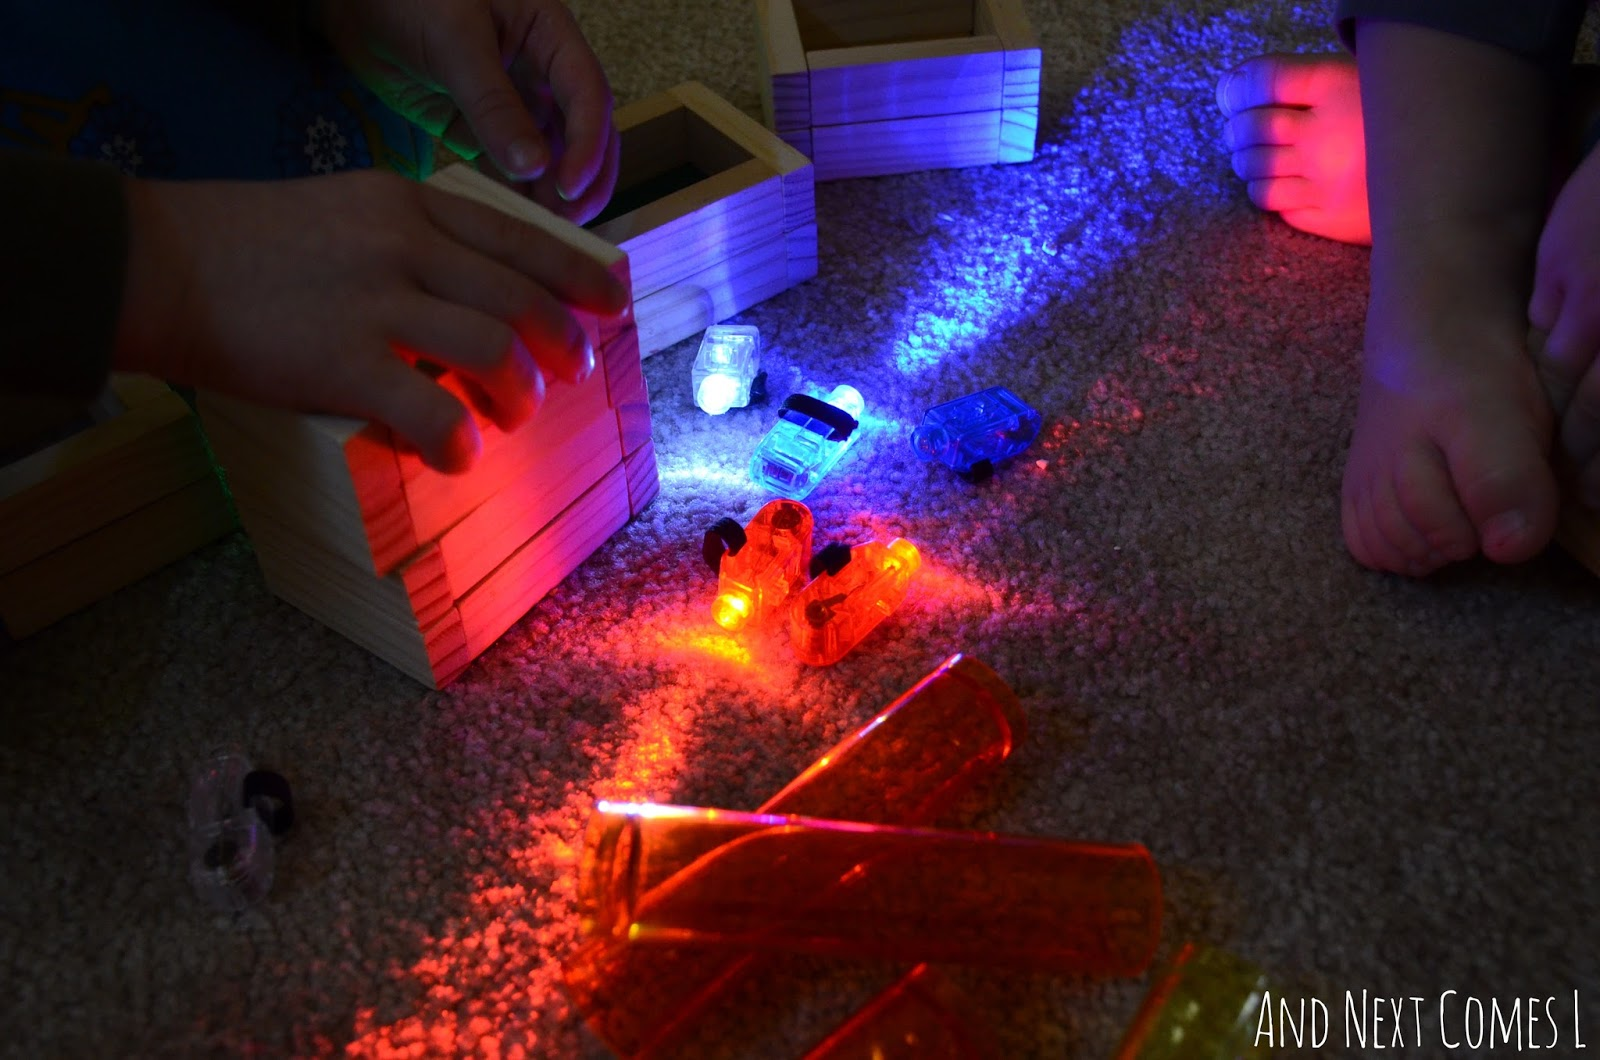 Light play for kids using finger lights and translucent objects from And Next Comes L